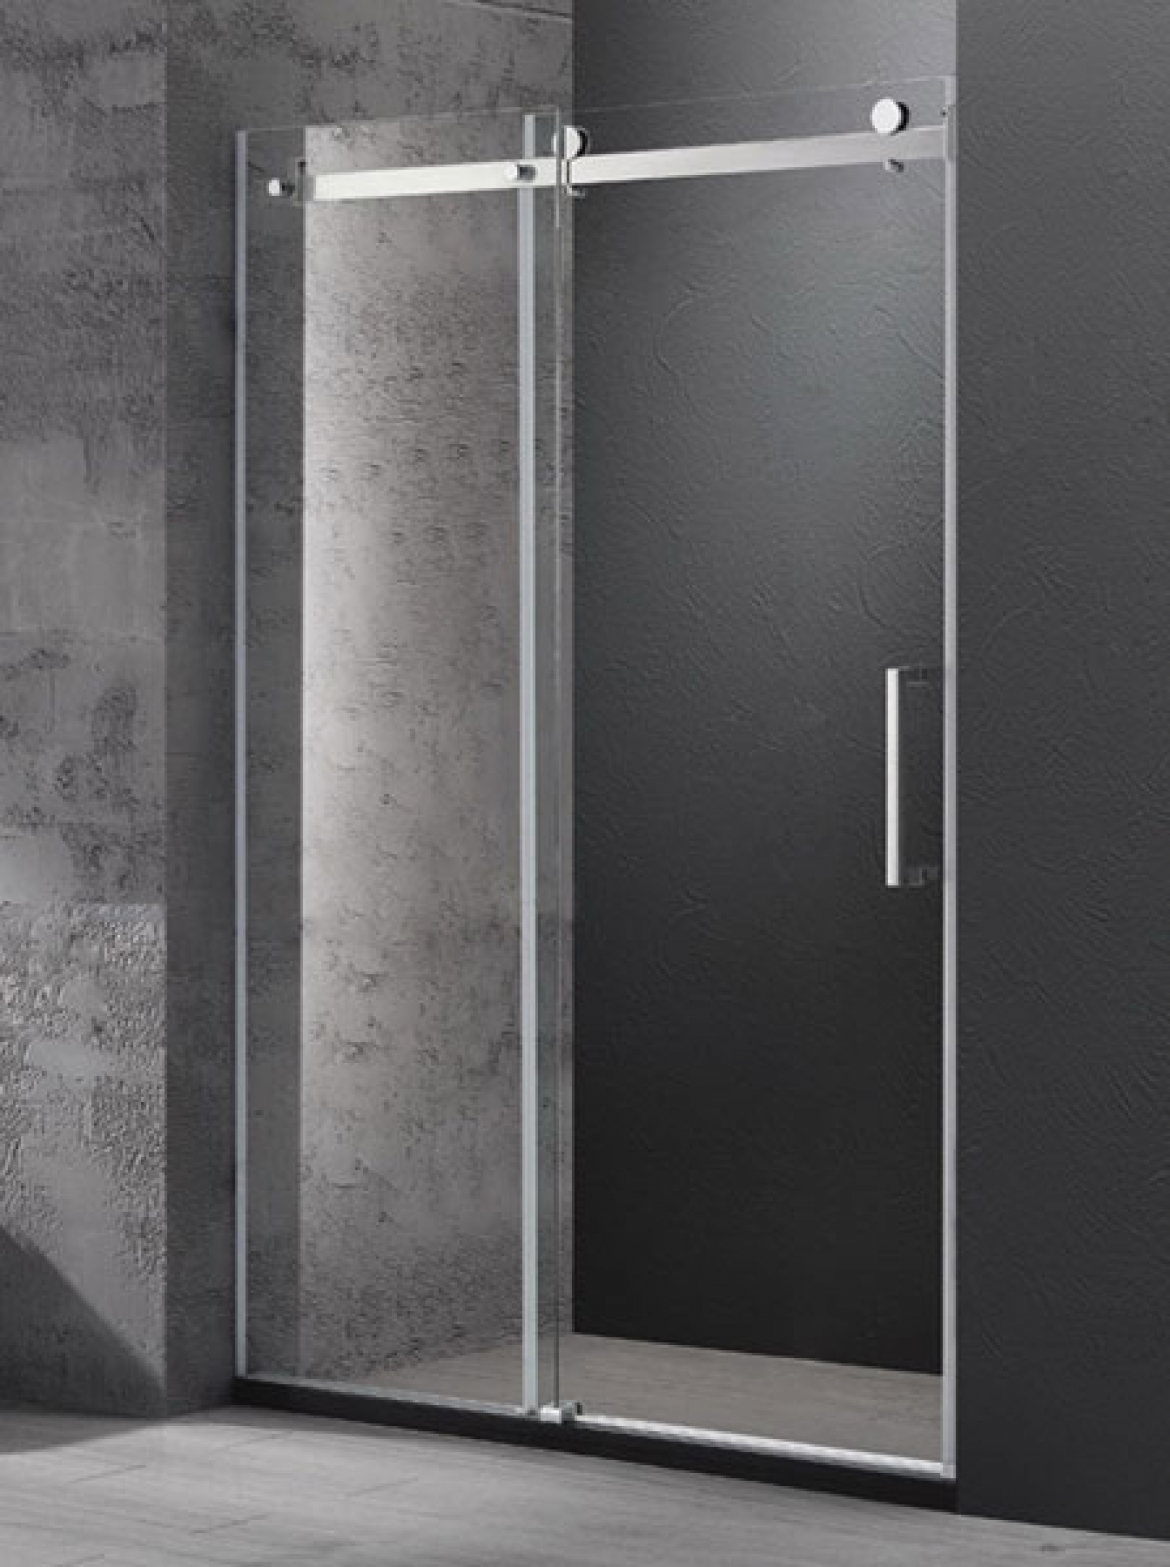 Wall to wall frameless sliding shower screen [1150 x 1950 mm]